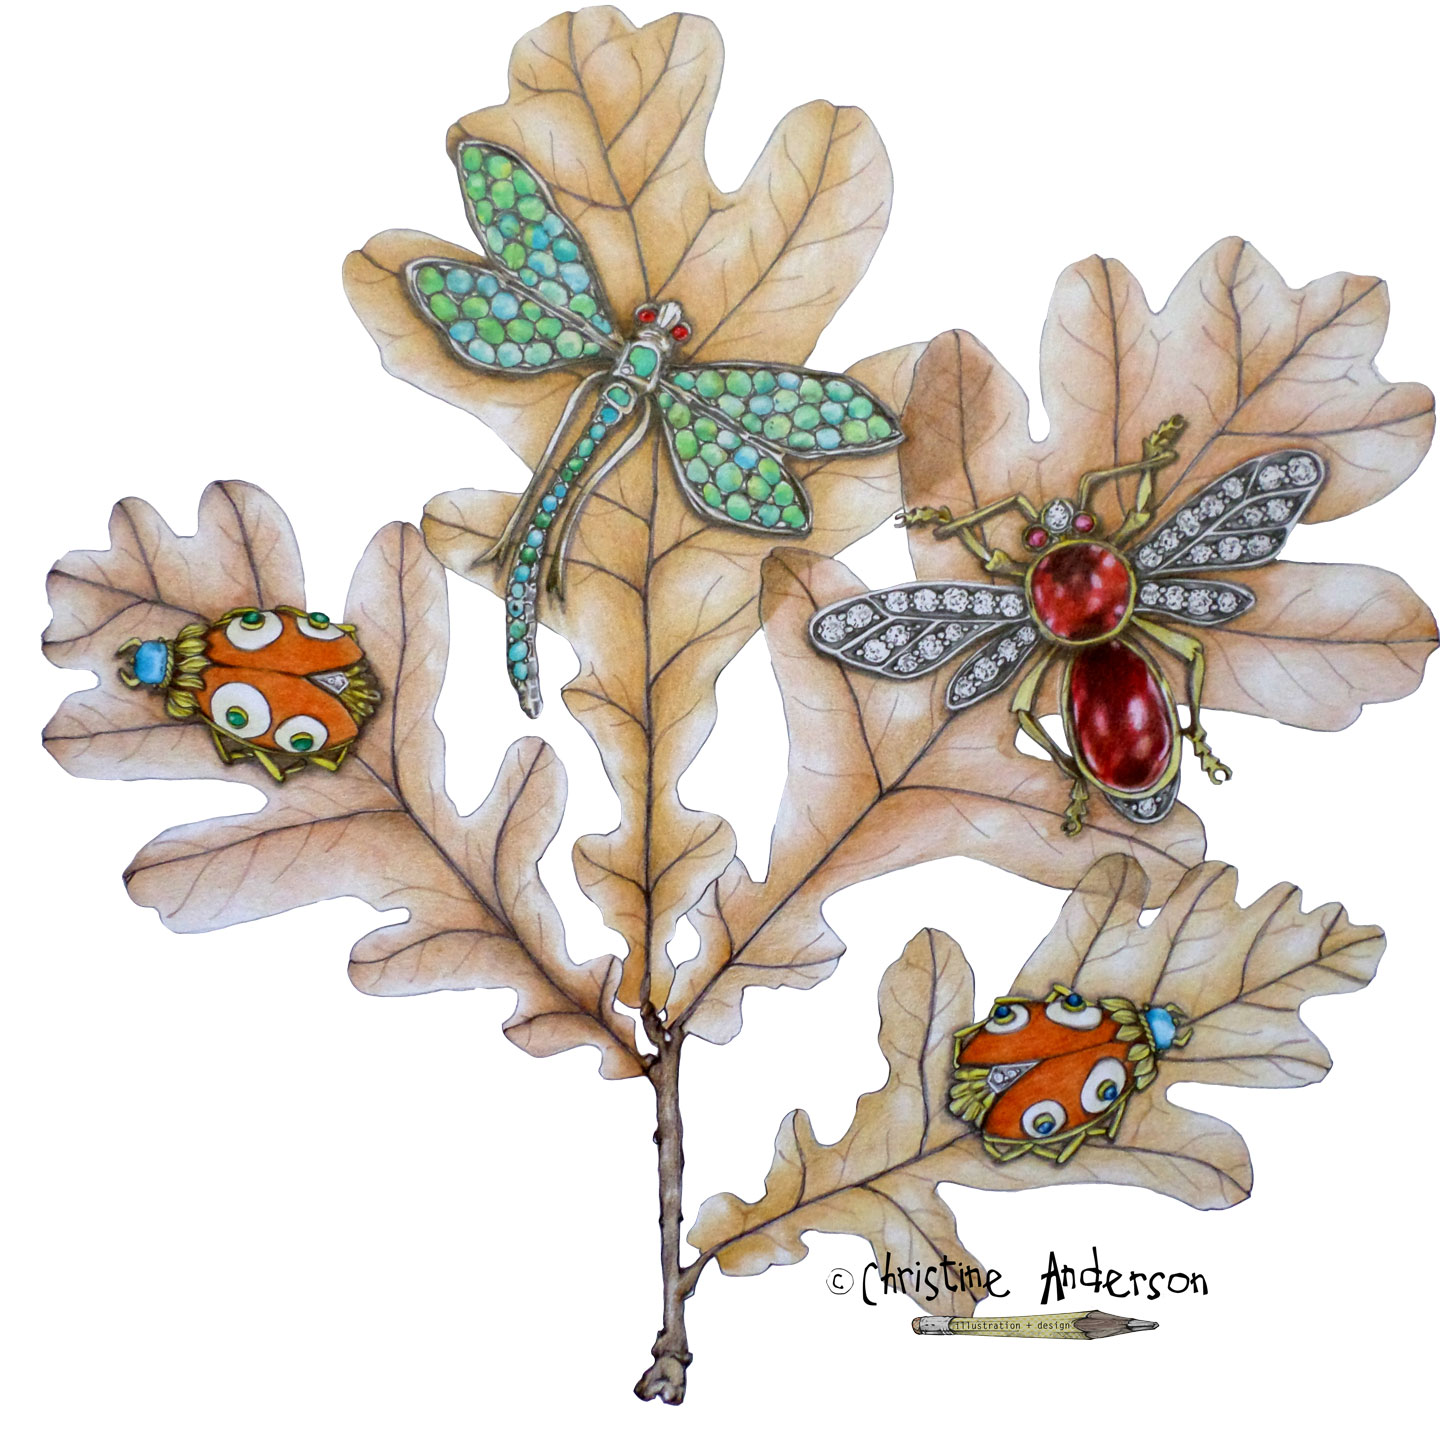 Color pencil rendering of some vintage brooches on some fall leaves